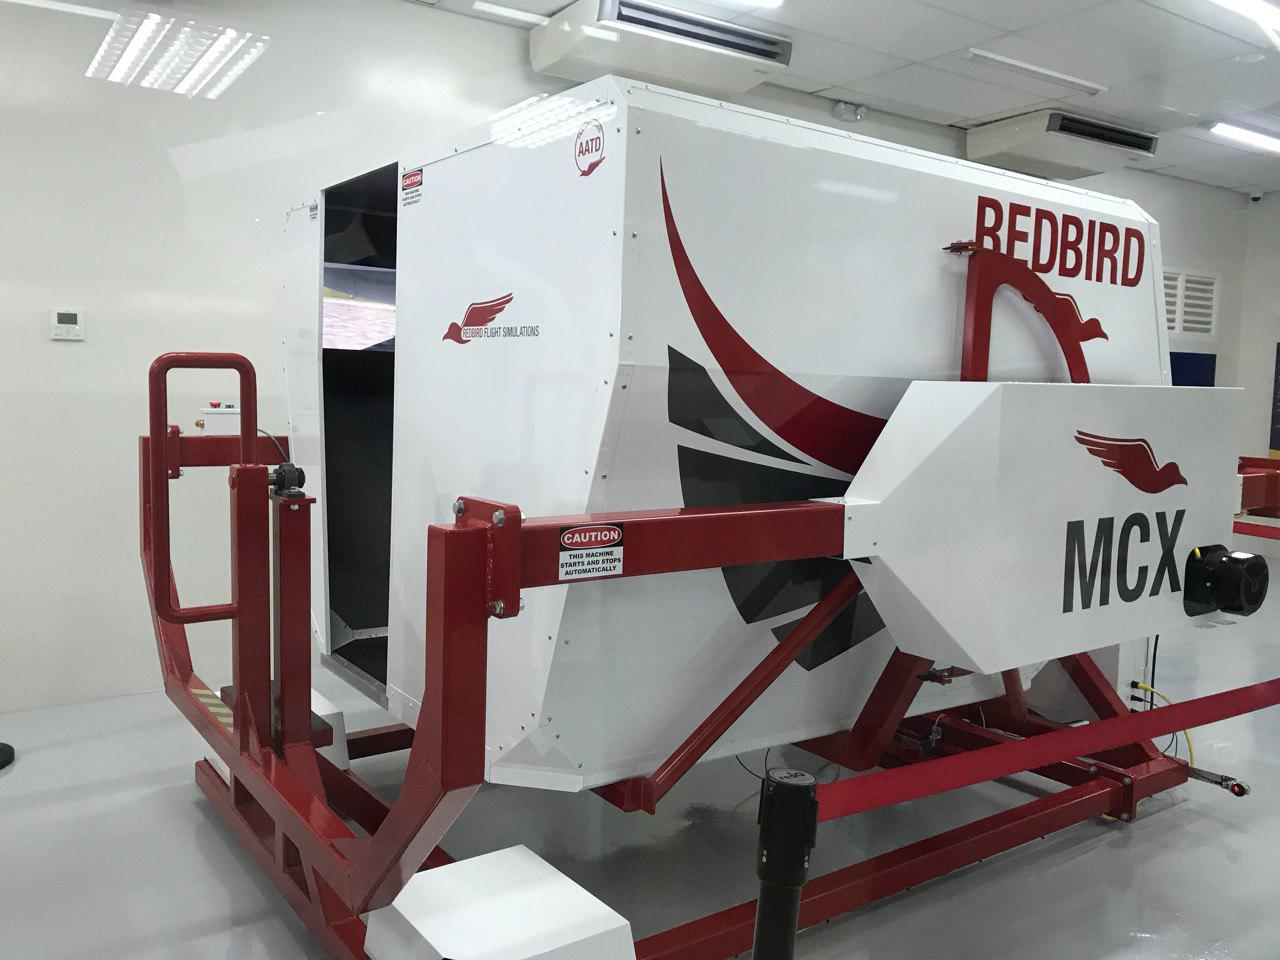 REDBIRD MCX. This is an aviation training device allowing the student pilot to demonstrate maneuvers as a 'co-pilot'. Photo by Aika Rey/Rappler